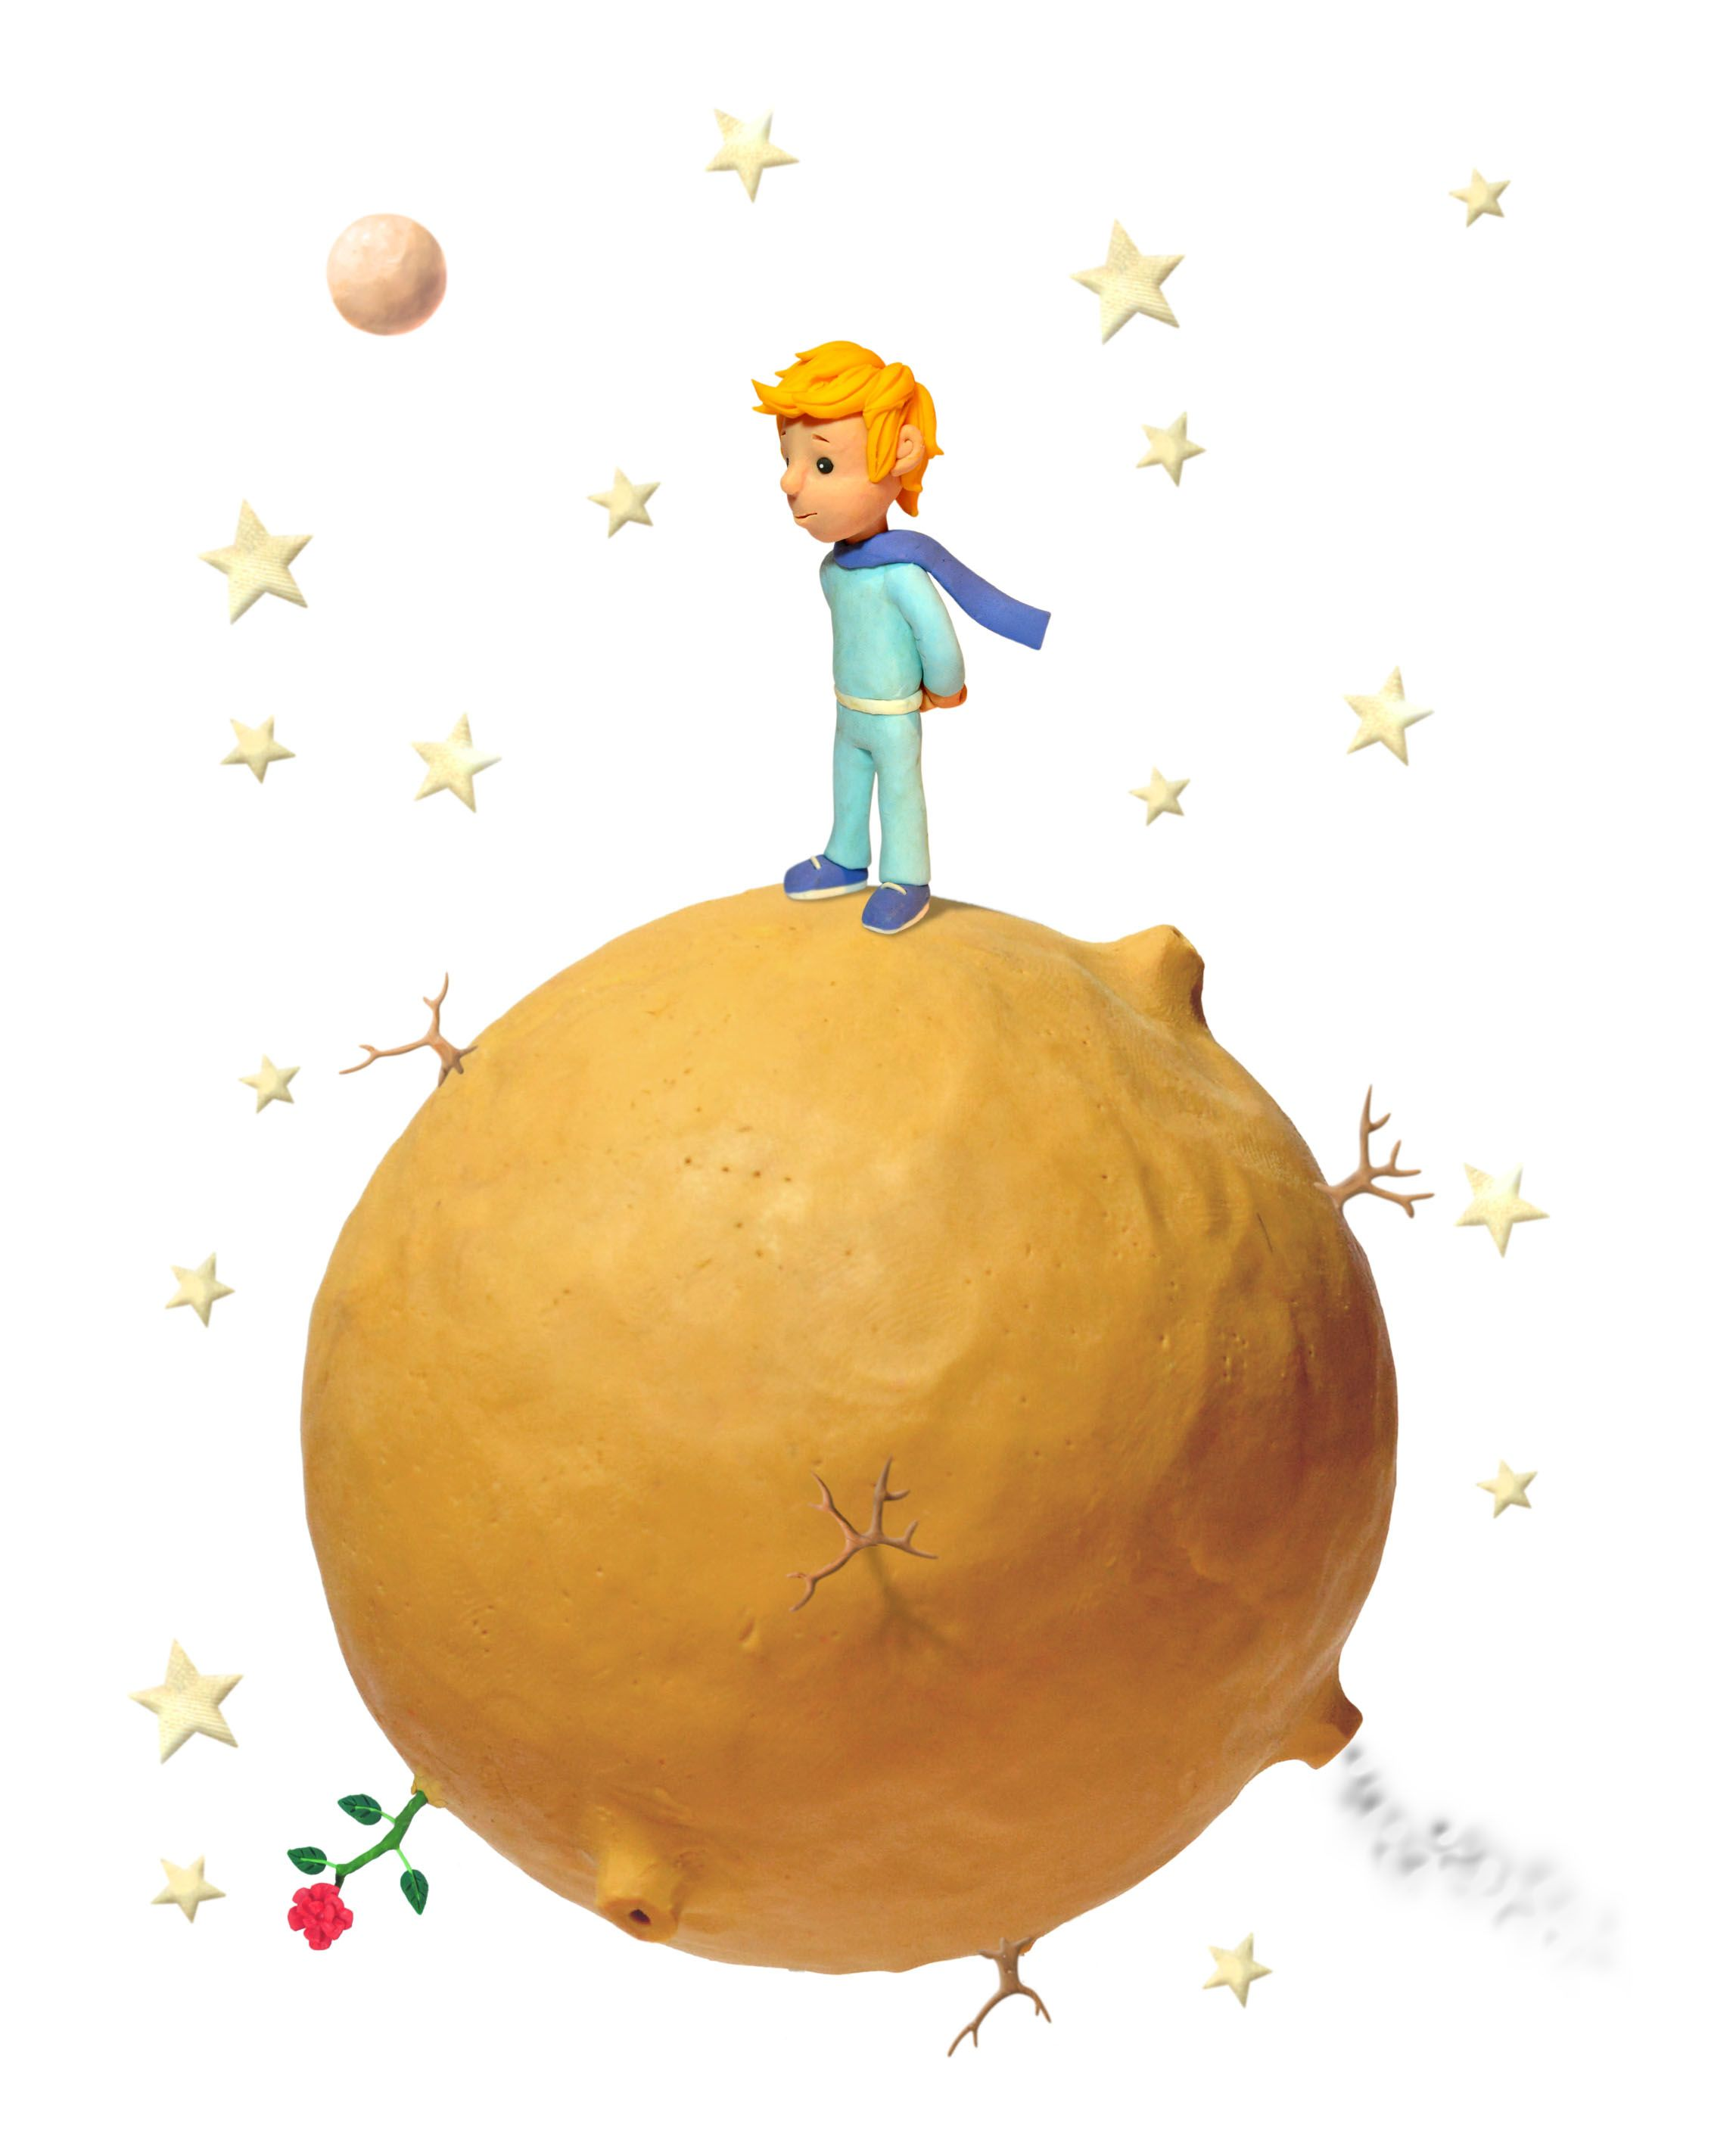 Su Planeta De Origen Era Apenas Mas Grande Que Una Casa Principito Little Prince Plastilina Clay Illustration The Little Prince Prince Ceramics